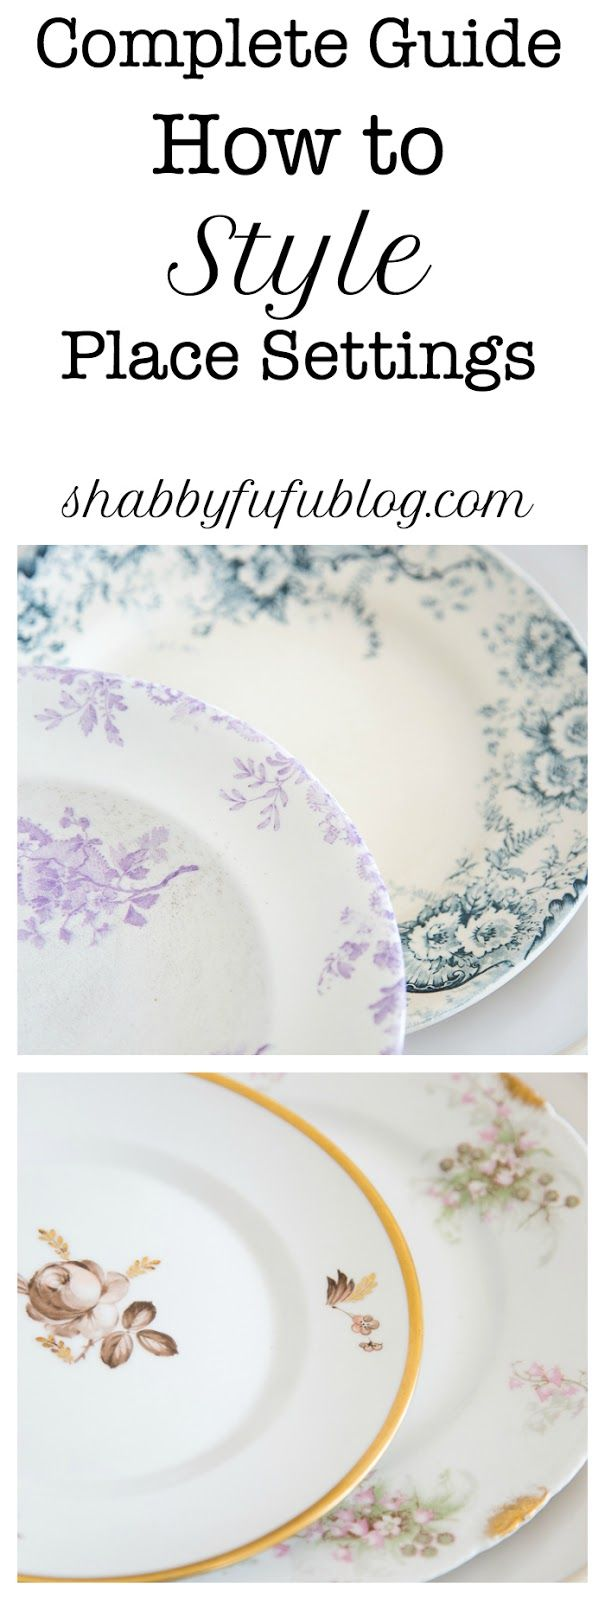 How To Style Place Settings And Mix Patterns Up  #dishes #placesetting #tablescape